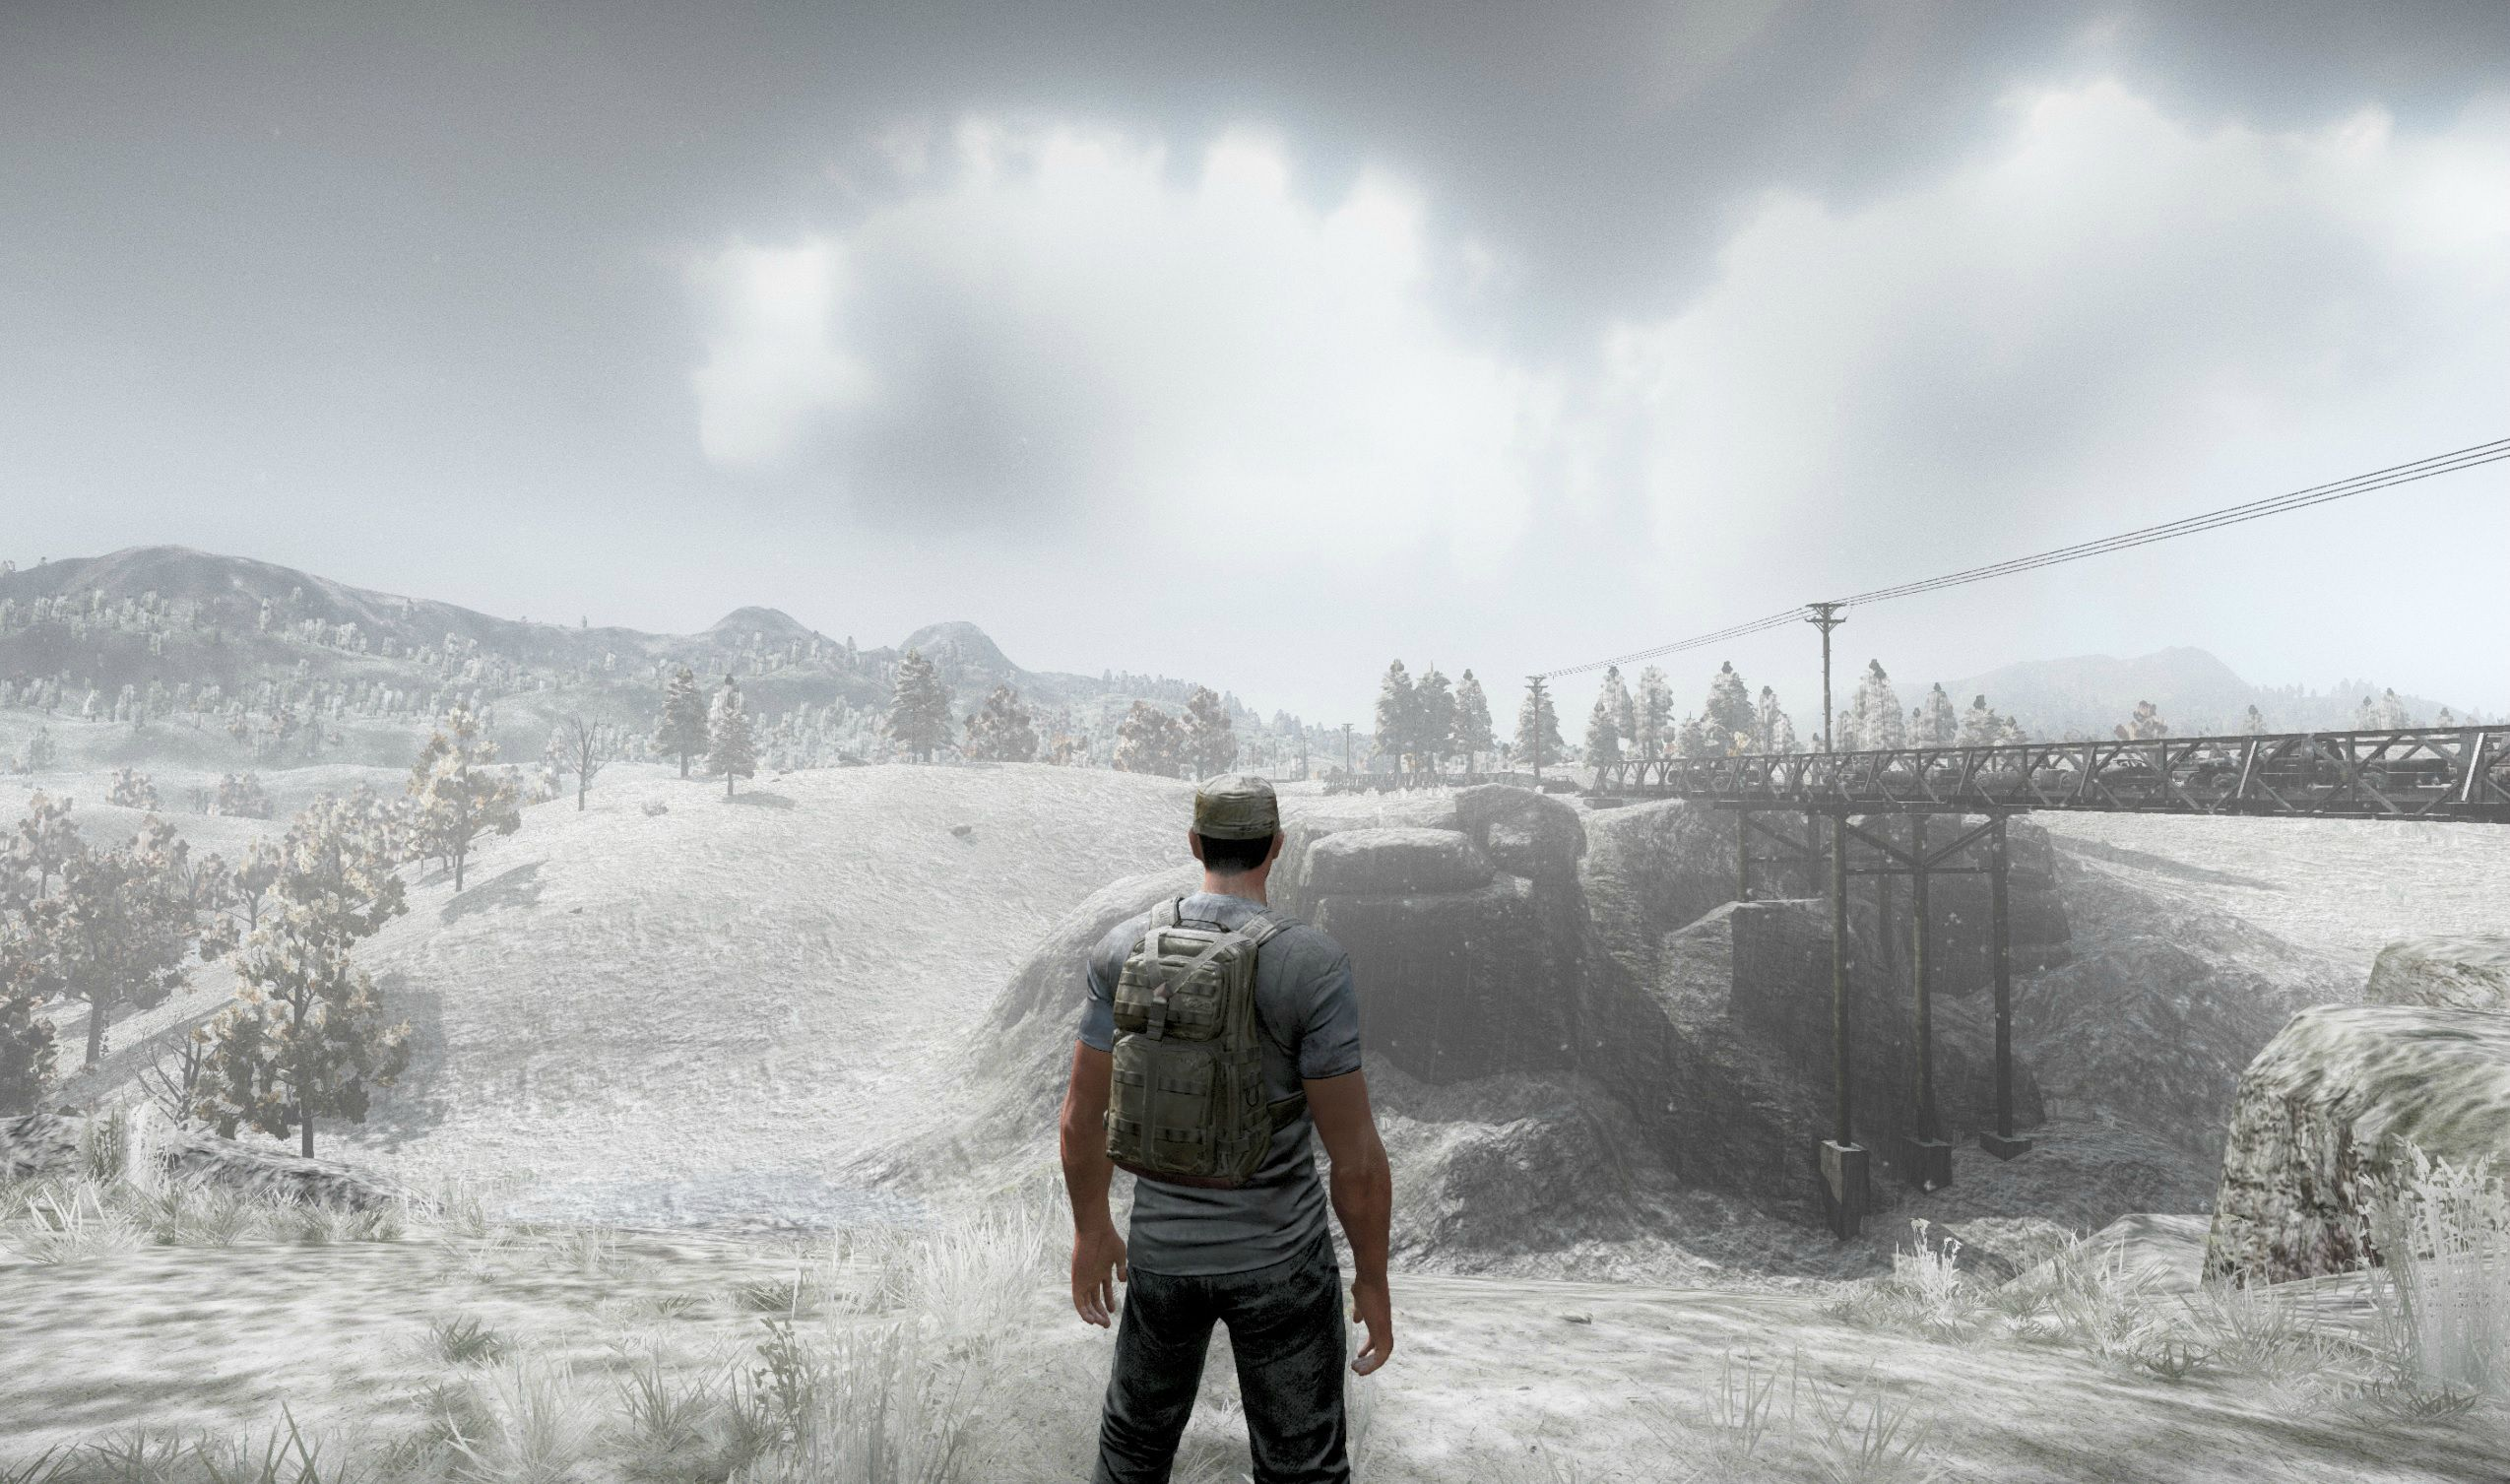 Weather changes in H1Z1 shown in new images | VG247